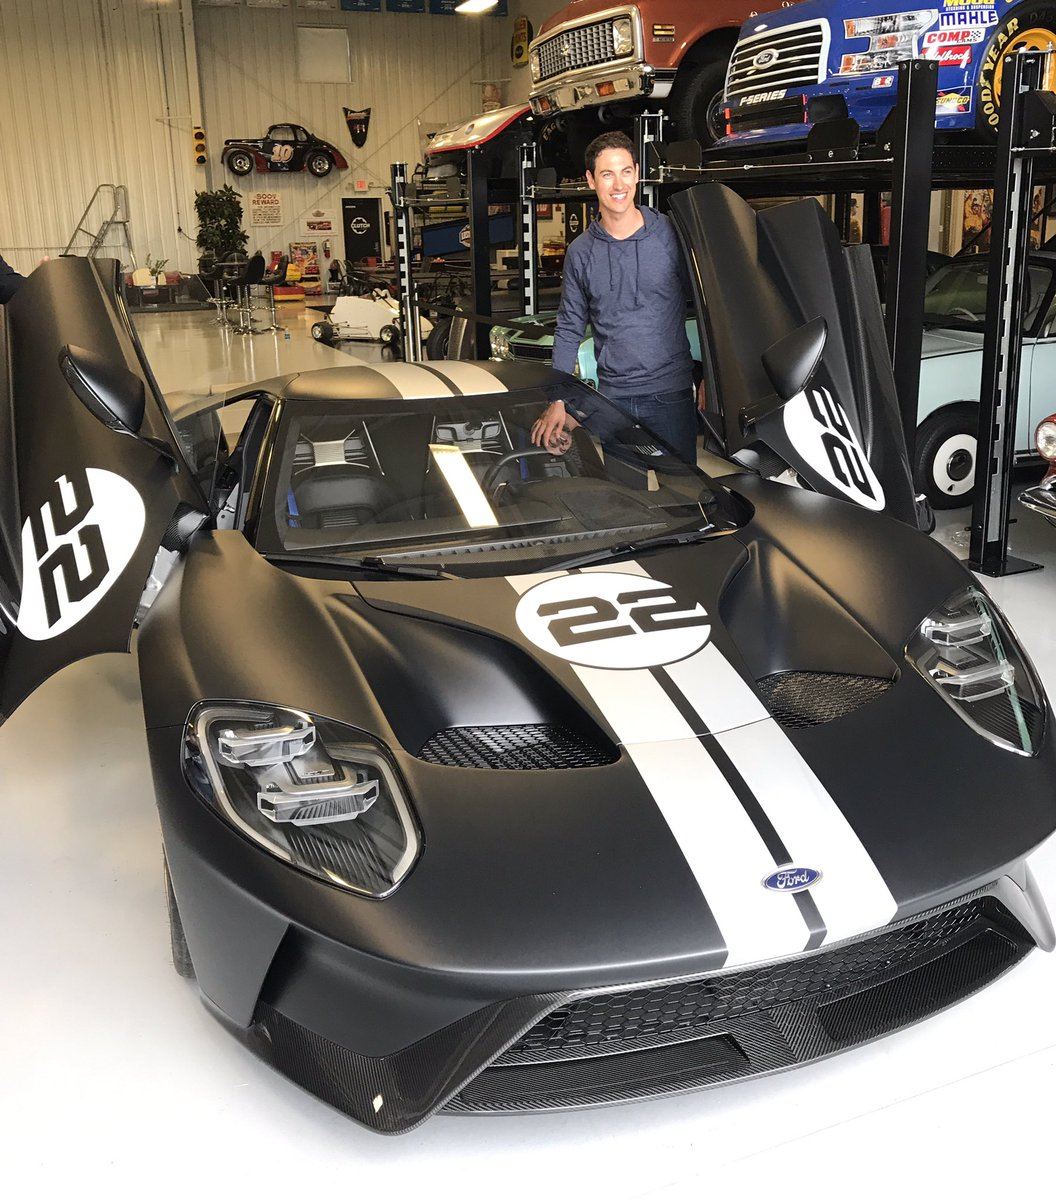 Thank You Fordperformance For Allowing Me To Have One Of These Beautiful Cars Fordgt Https T Co Jmlrgyakkl